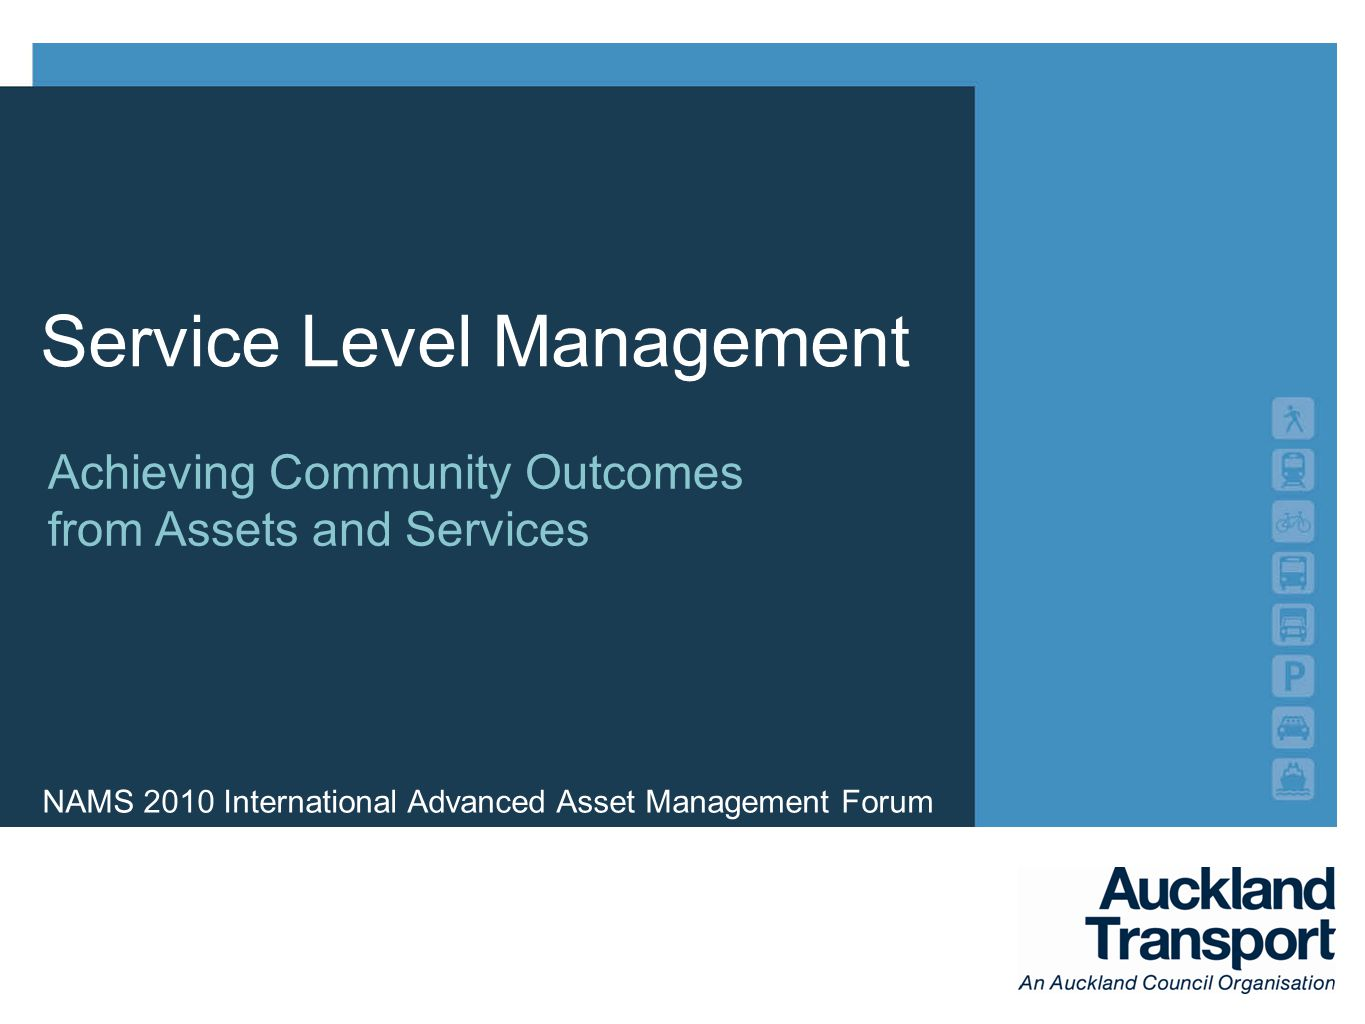 NAMS 2010 International Advanced Asset Management Forum Achieving Community Outcomes from Assets and Services Service Level Management